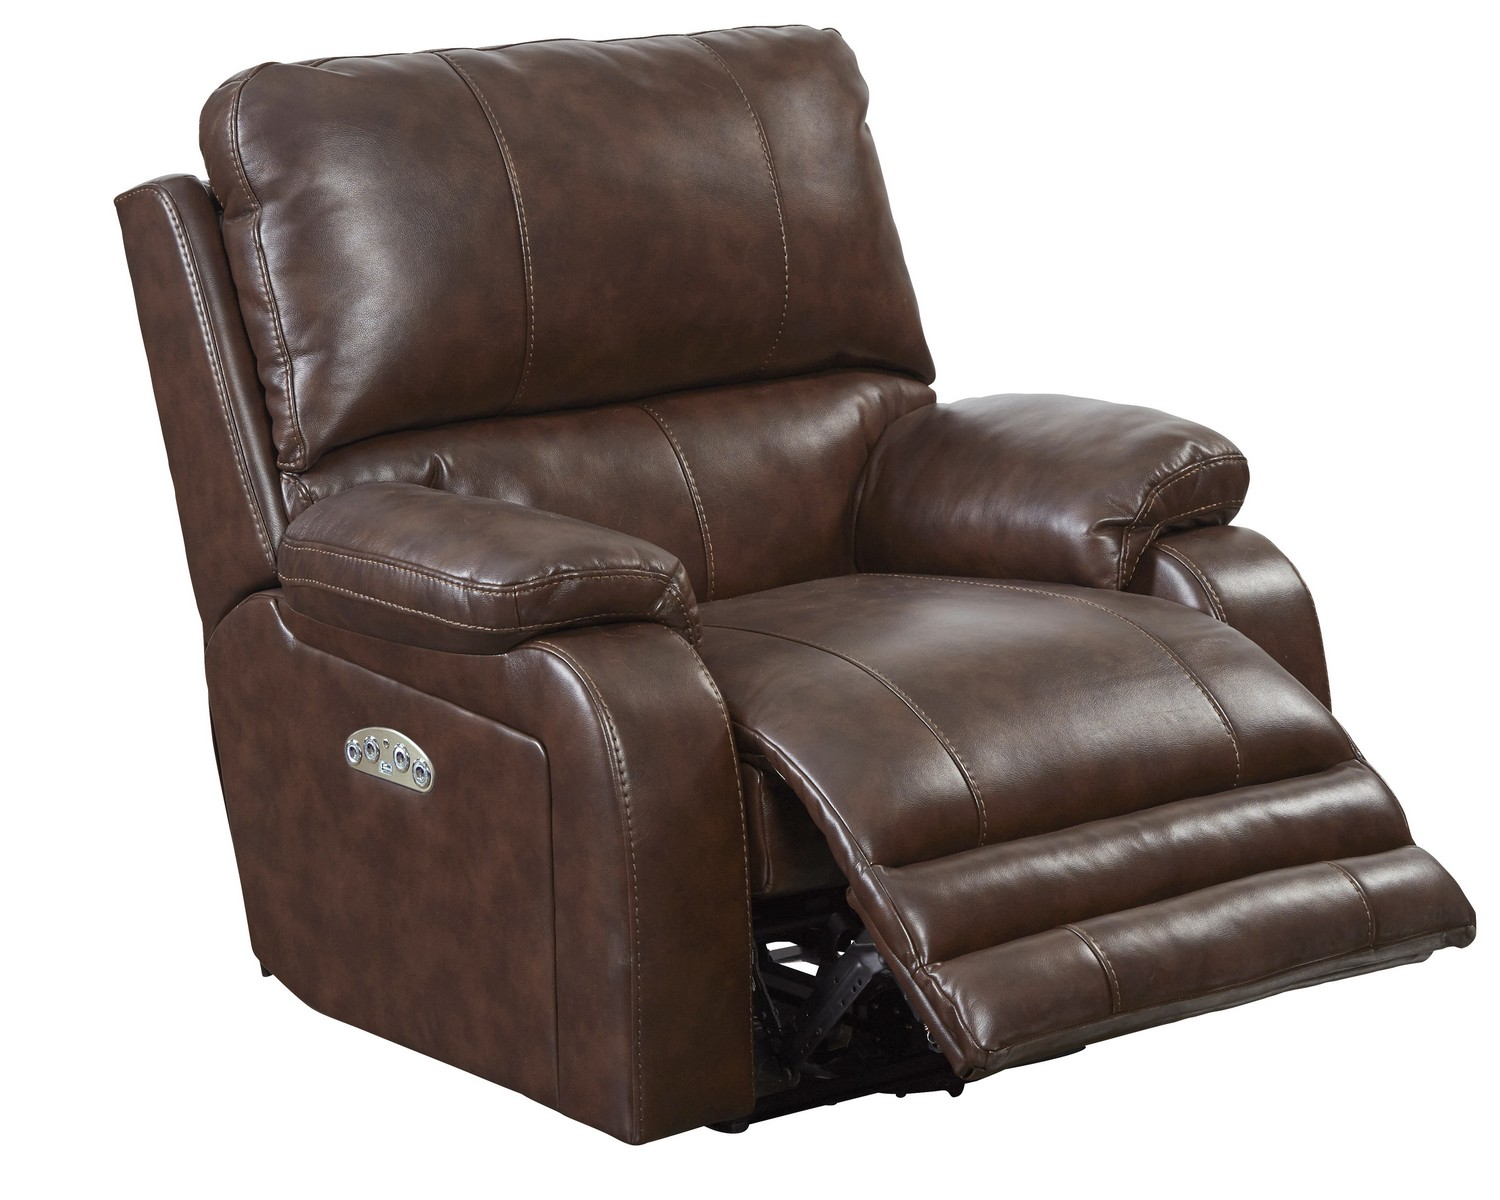 catnapper thornton power headrest power lay flat recliner java - Catnapper Recliner